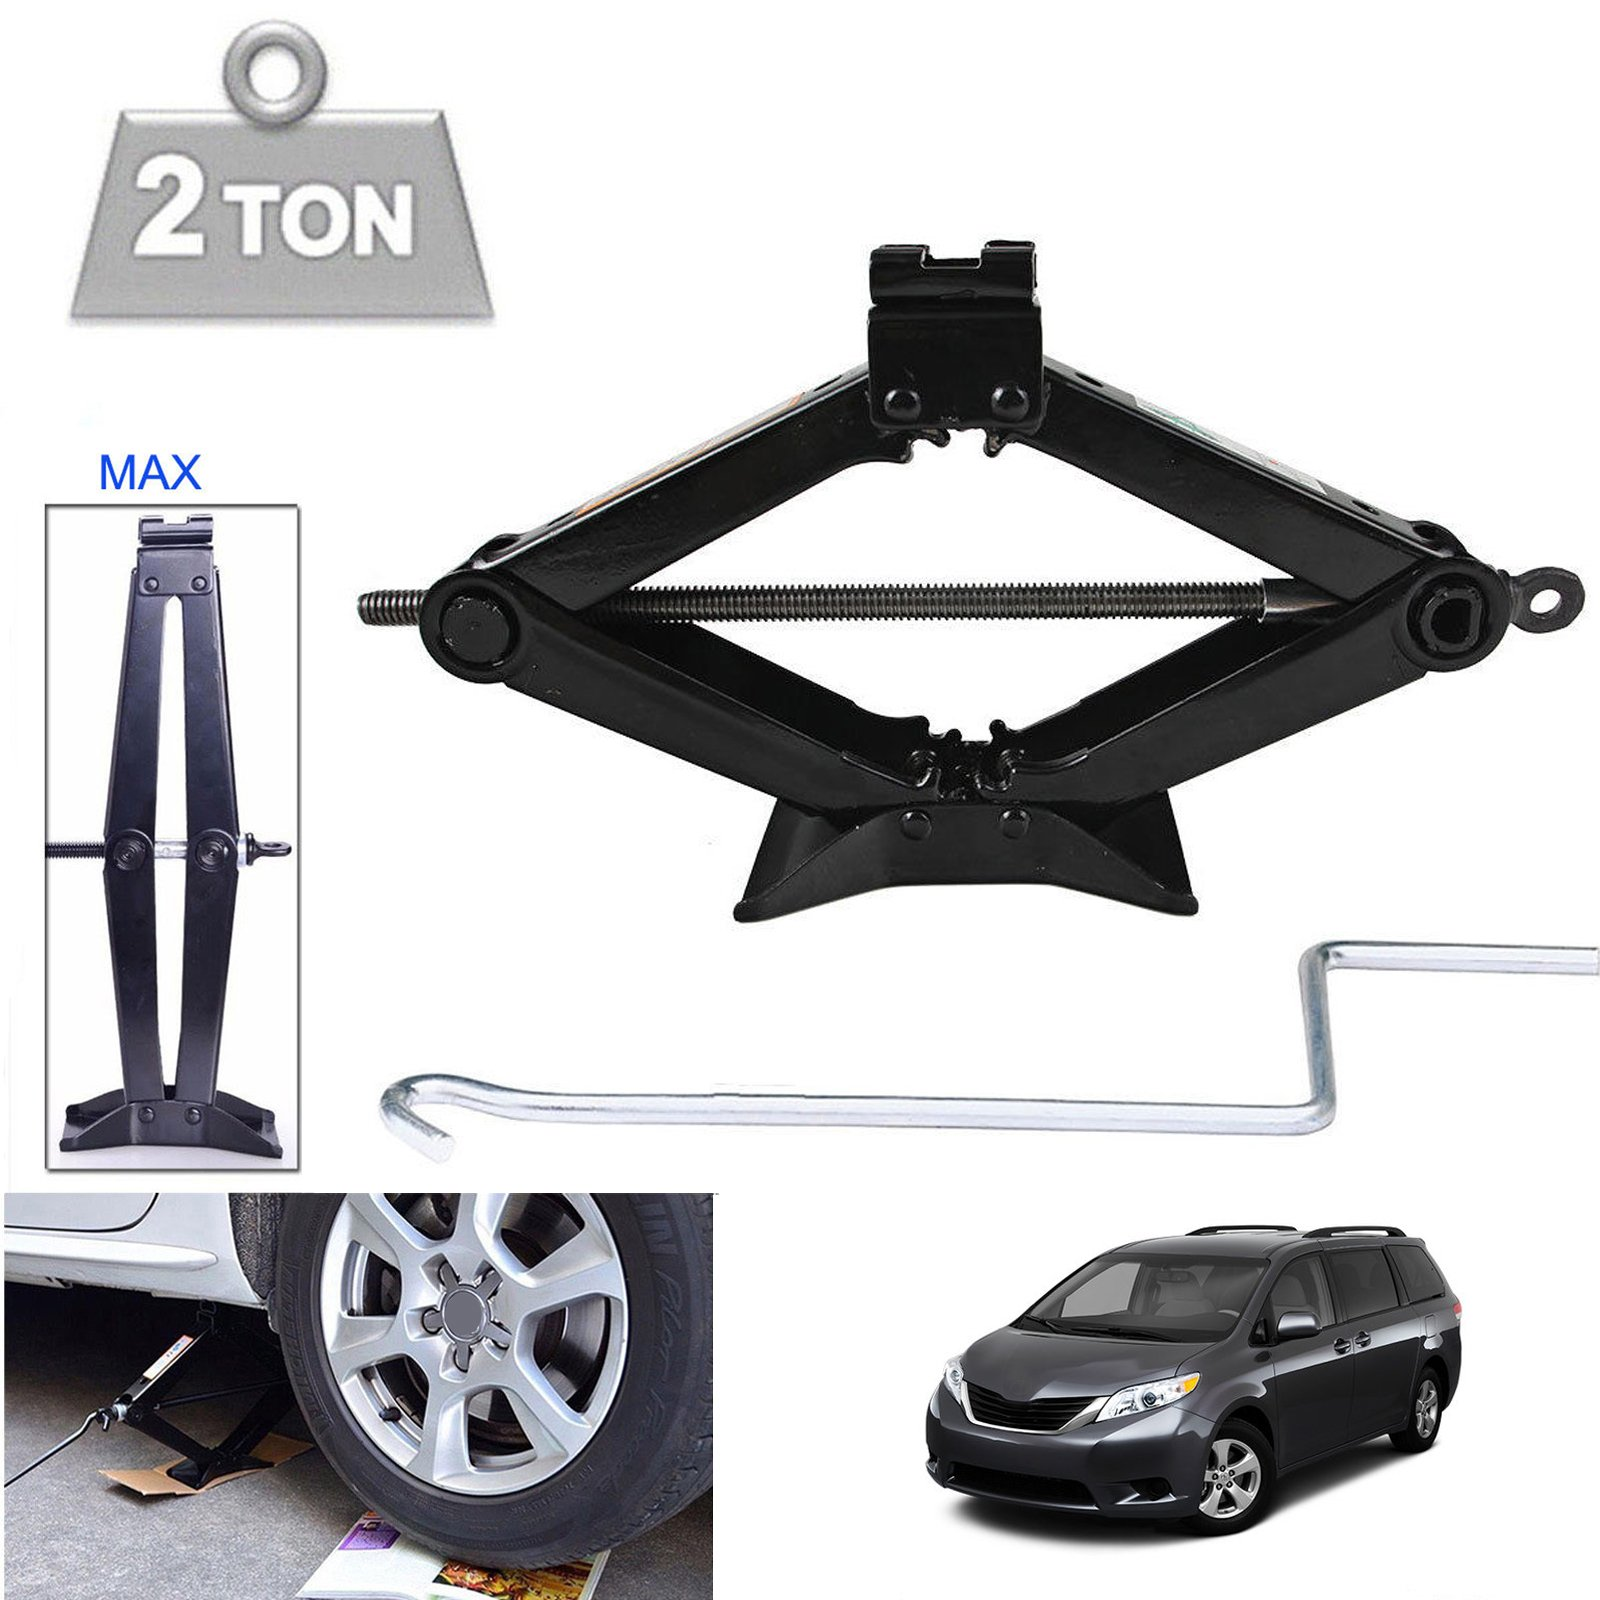 Vehicle Scissor Jack 2 Ton Automotive Car Jack Wheel Tire Changing Repair Kit with Chromed Speed Handle